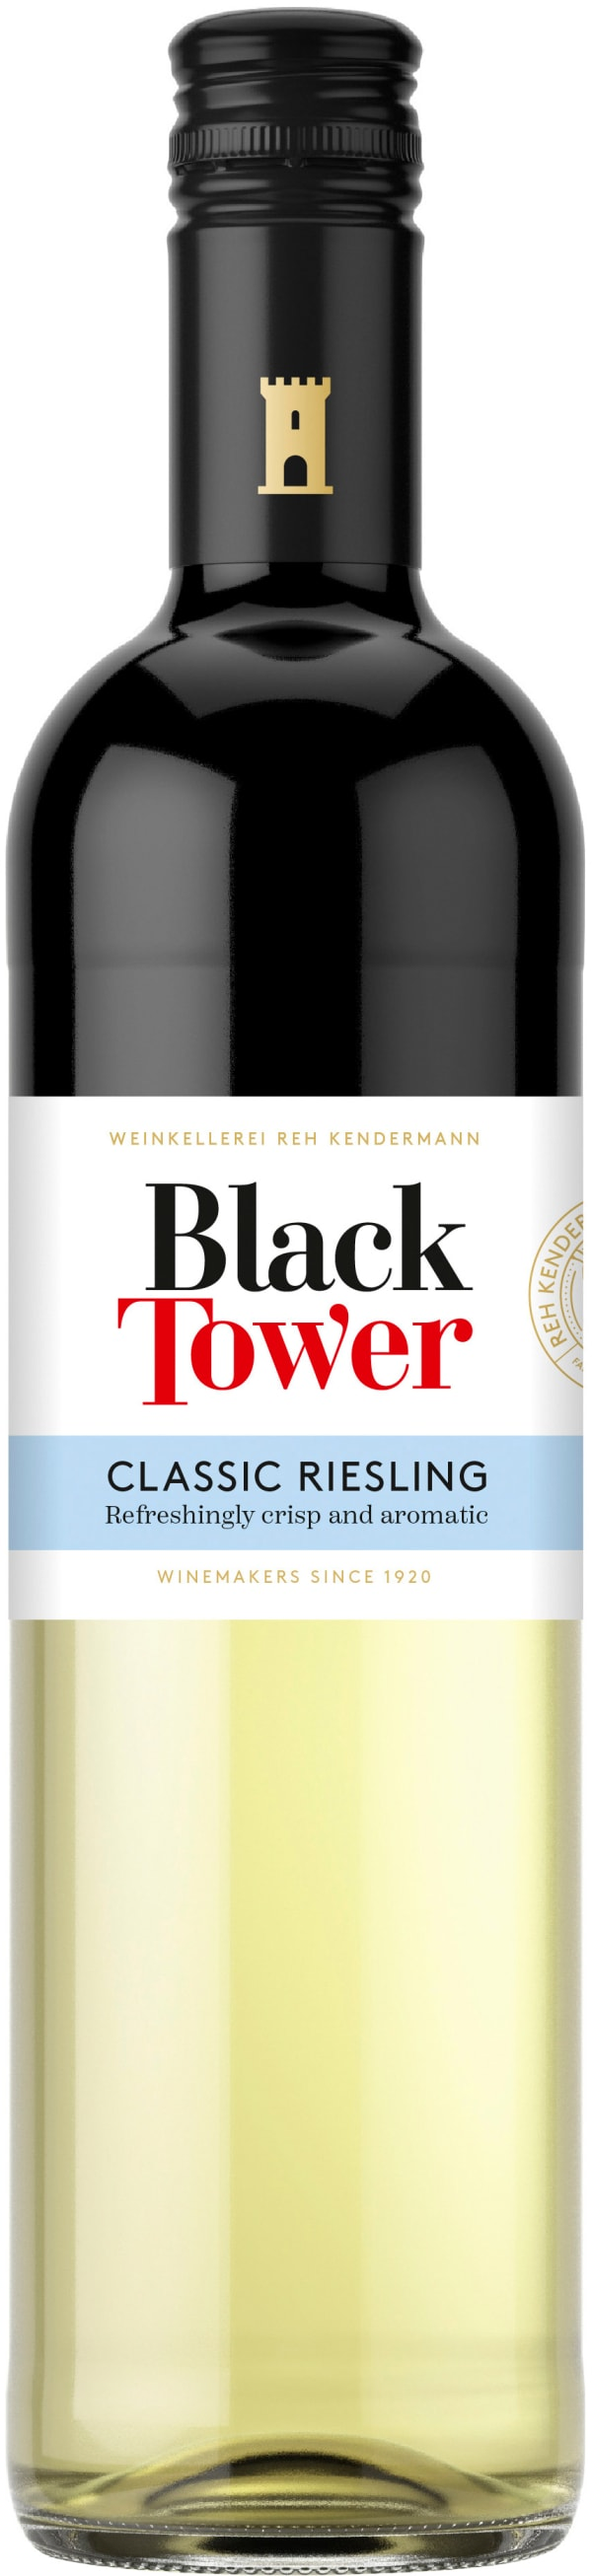 Black Tower Classic Riesling 2016